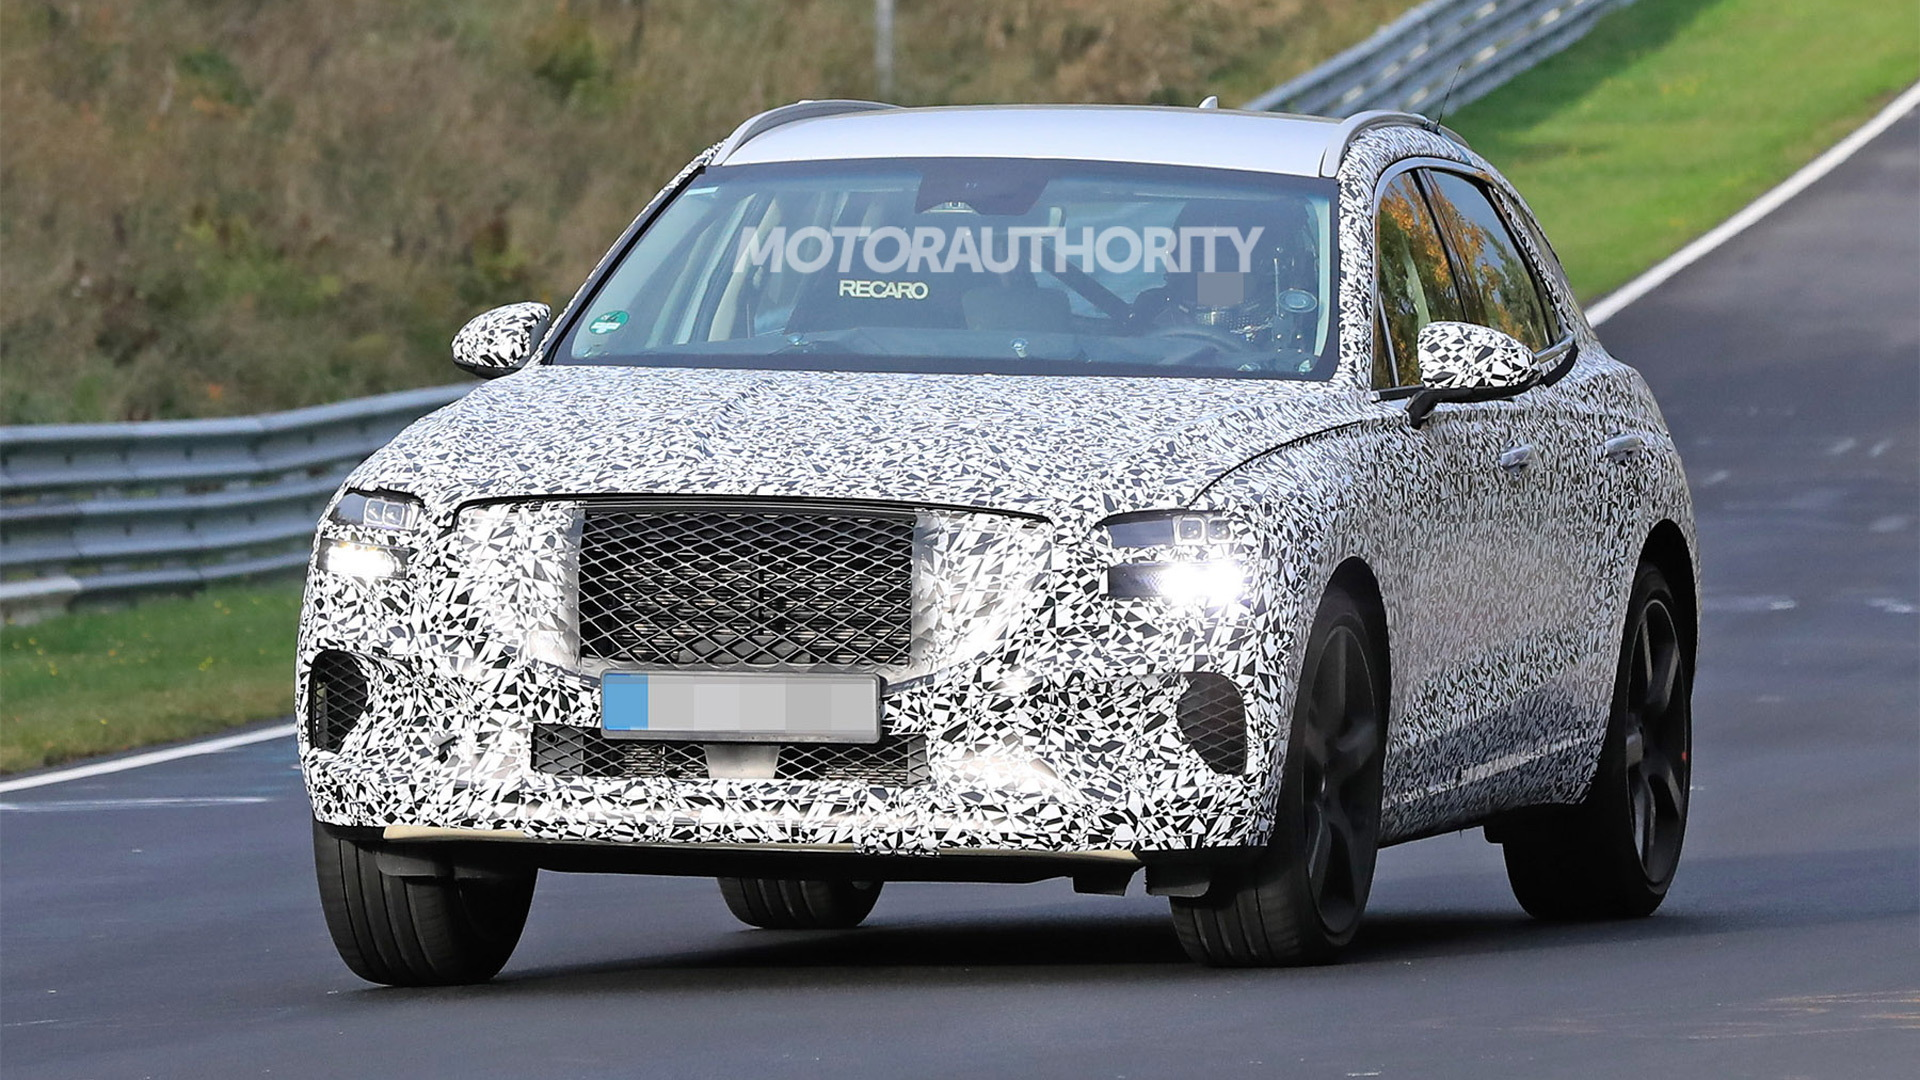 2022 Genesis GV70 spy shots - Photo credit: S. Baldauf/SB-Medien